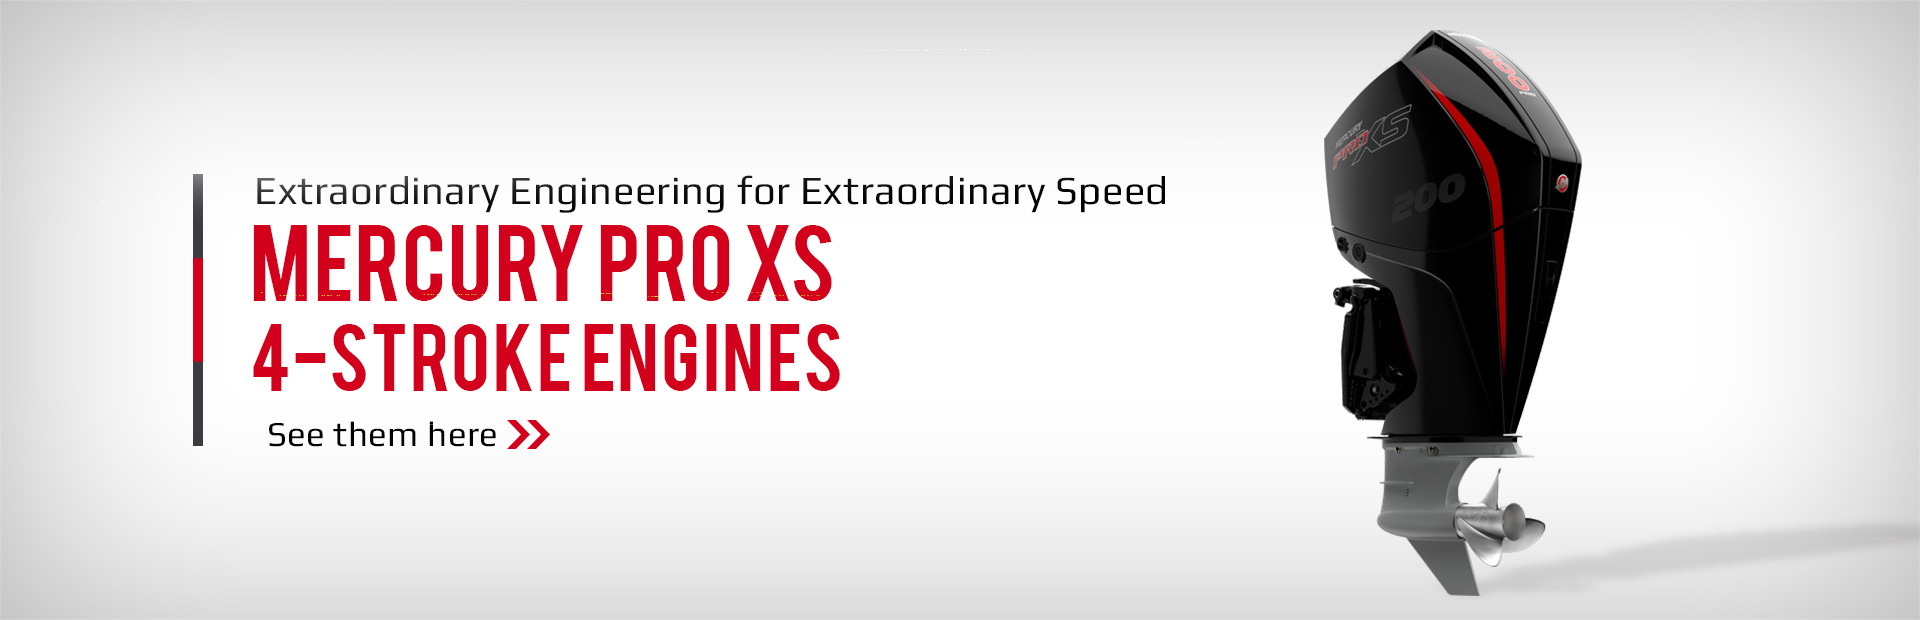 Mercury Pro XS 4-stroke Engines: extraordinary engineering for extraordinary speed. Click here to vi